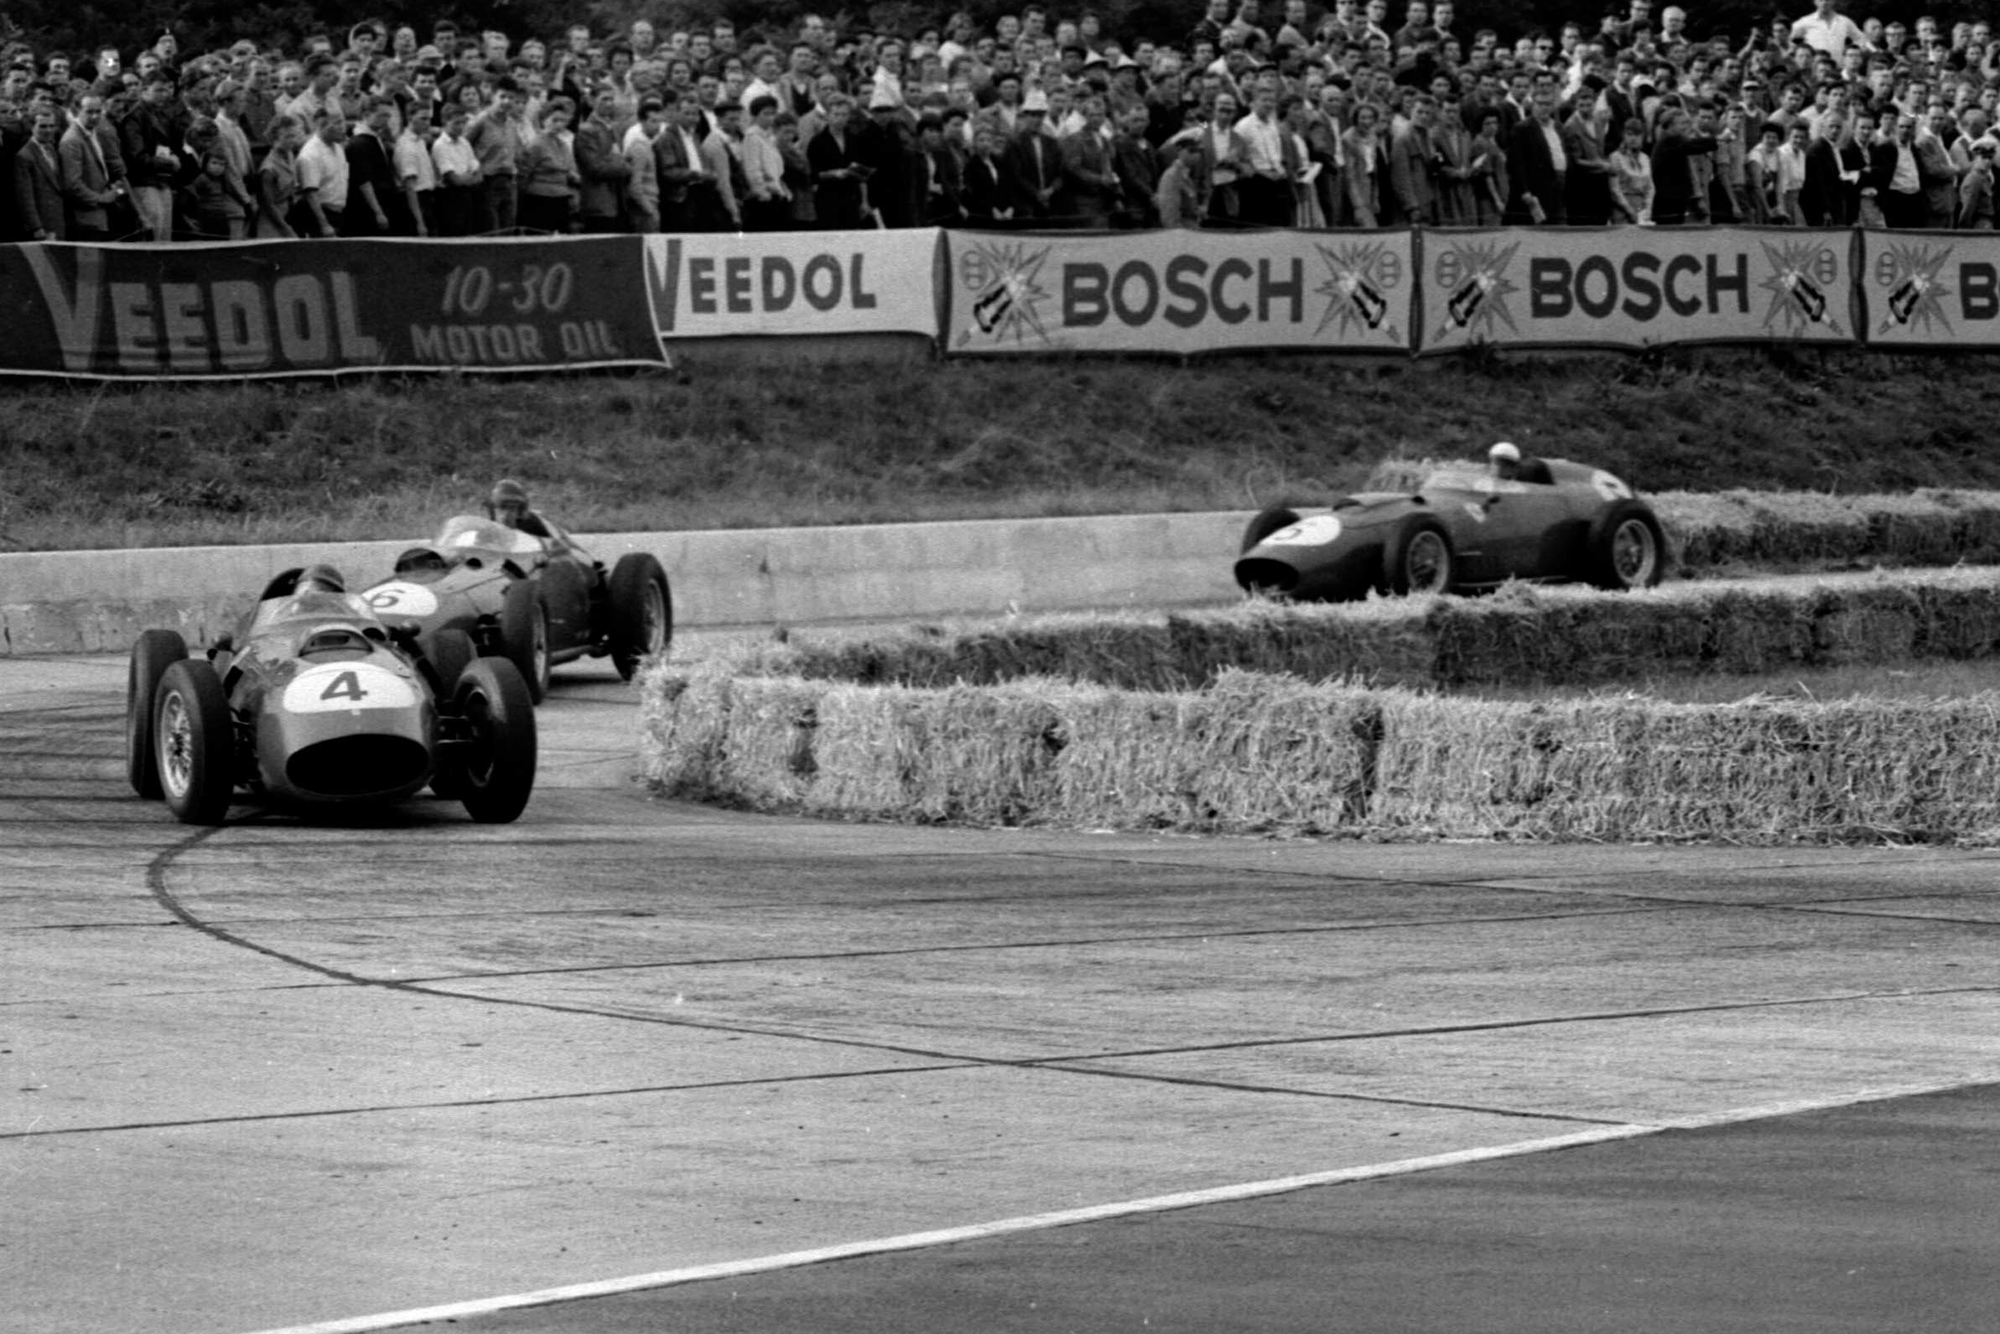 Tony Brooks in a Ferrari Dino 246 leads into the Hairpin.